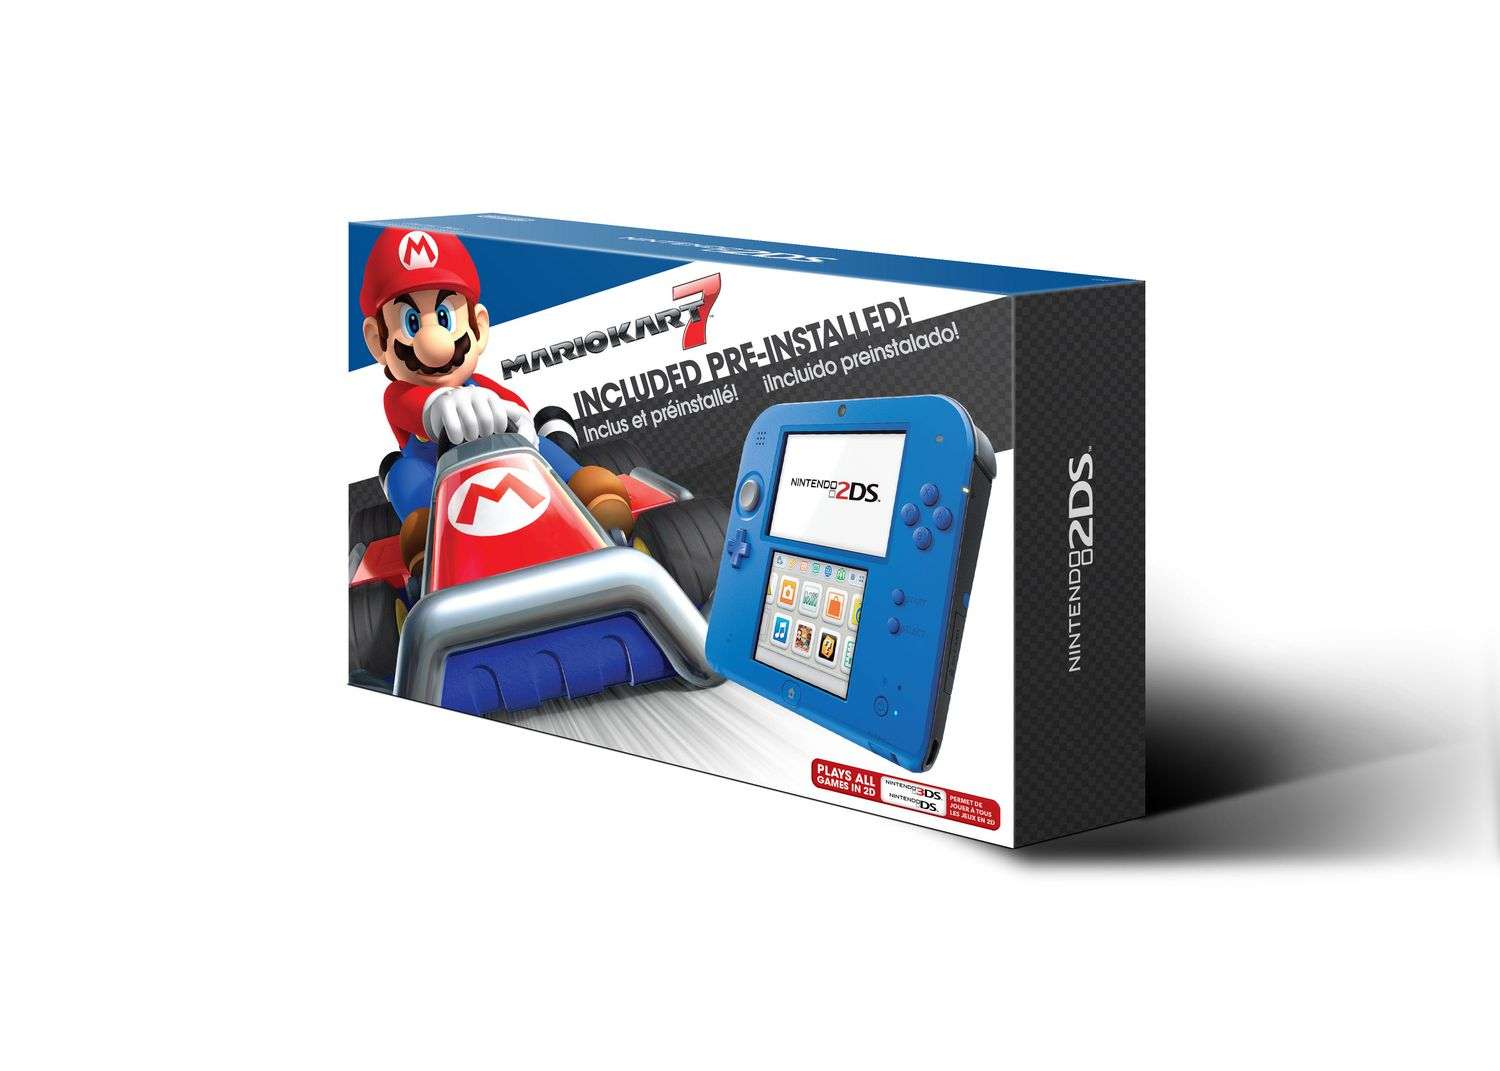 Game boy color quanto vale - Nintendo 2ds Electric Blue 2 With Mario Kart 7 Game Pre Installed